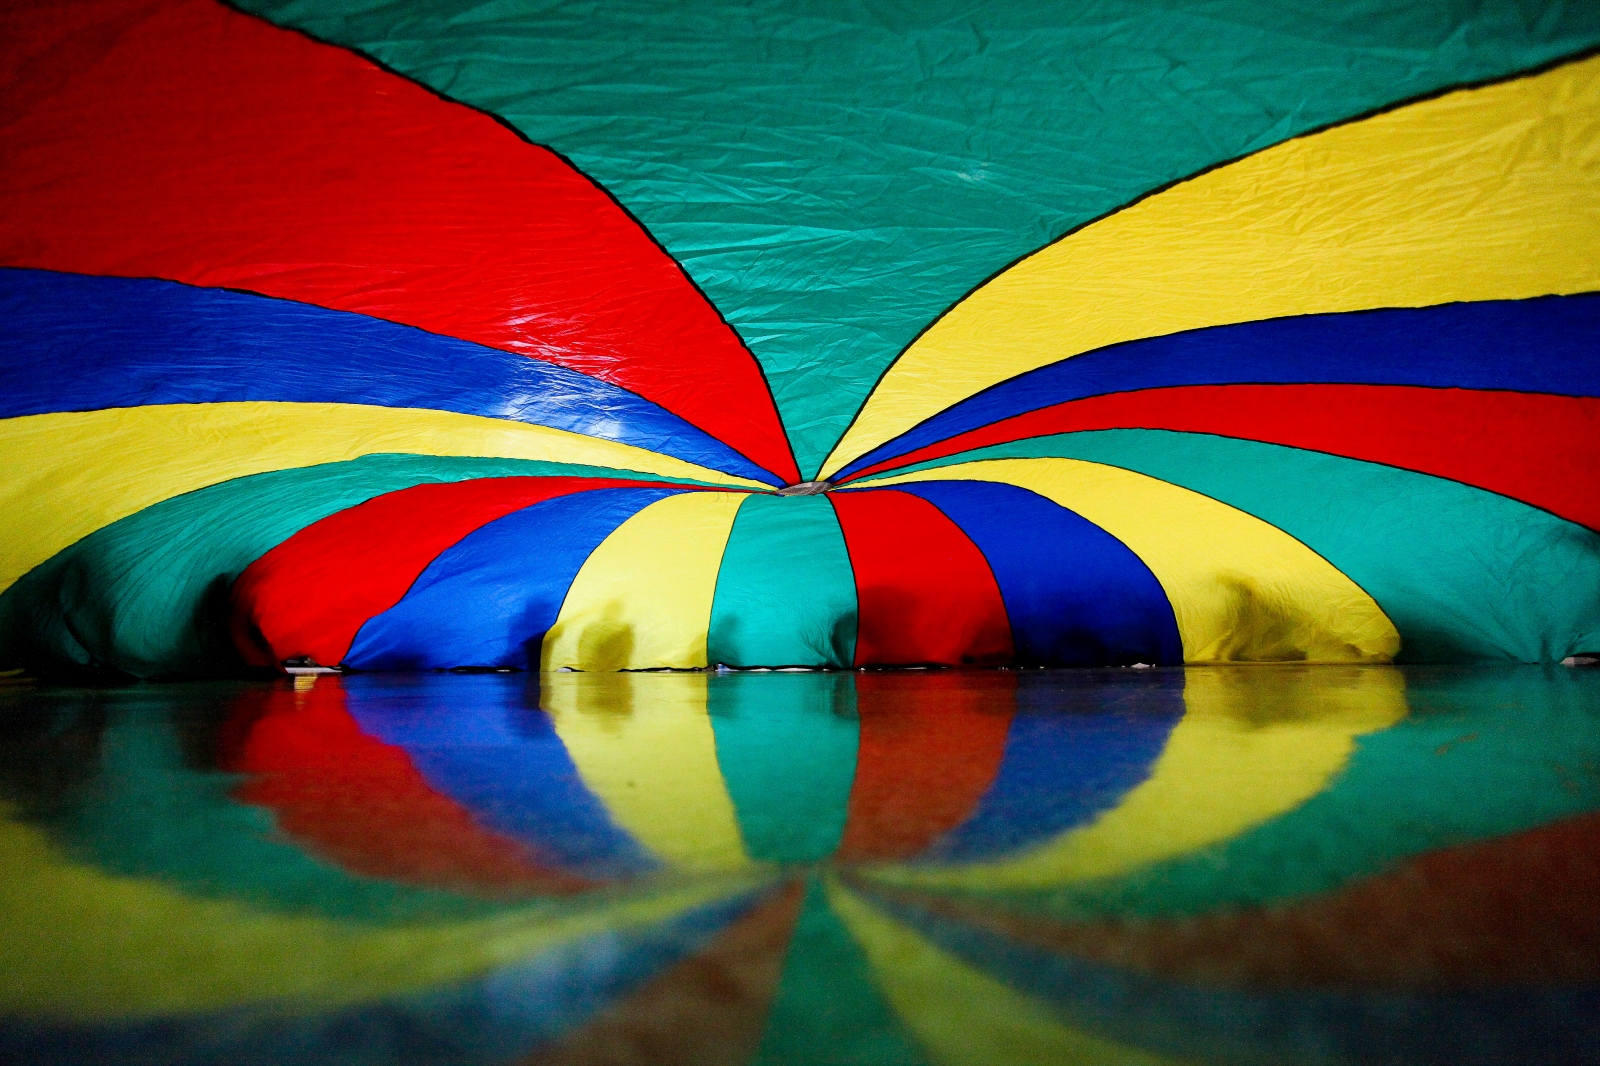 Students play with a parachute during gym class. Their laughter fills the gymnasium as their teacher educates them on the importance of teamwork.